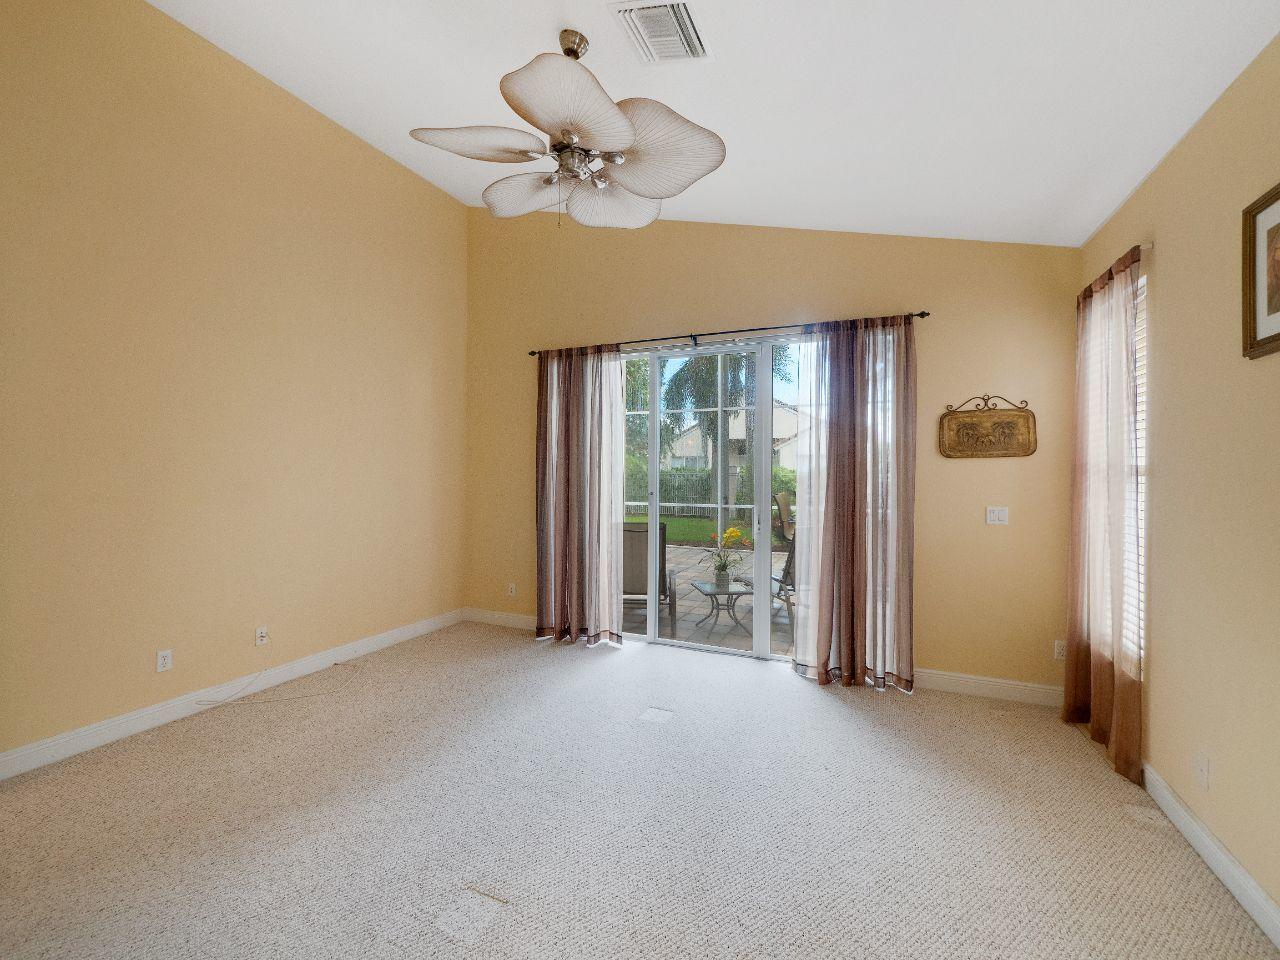 8185 Spyglass Drive, West Palm Beach, Florida 33412, 2 Bedrooms Bedrooms, ,2.1 BathroomsBathrooms,A,Single family,Spyglass,RX-10473365